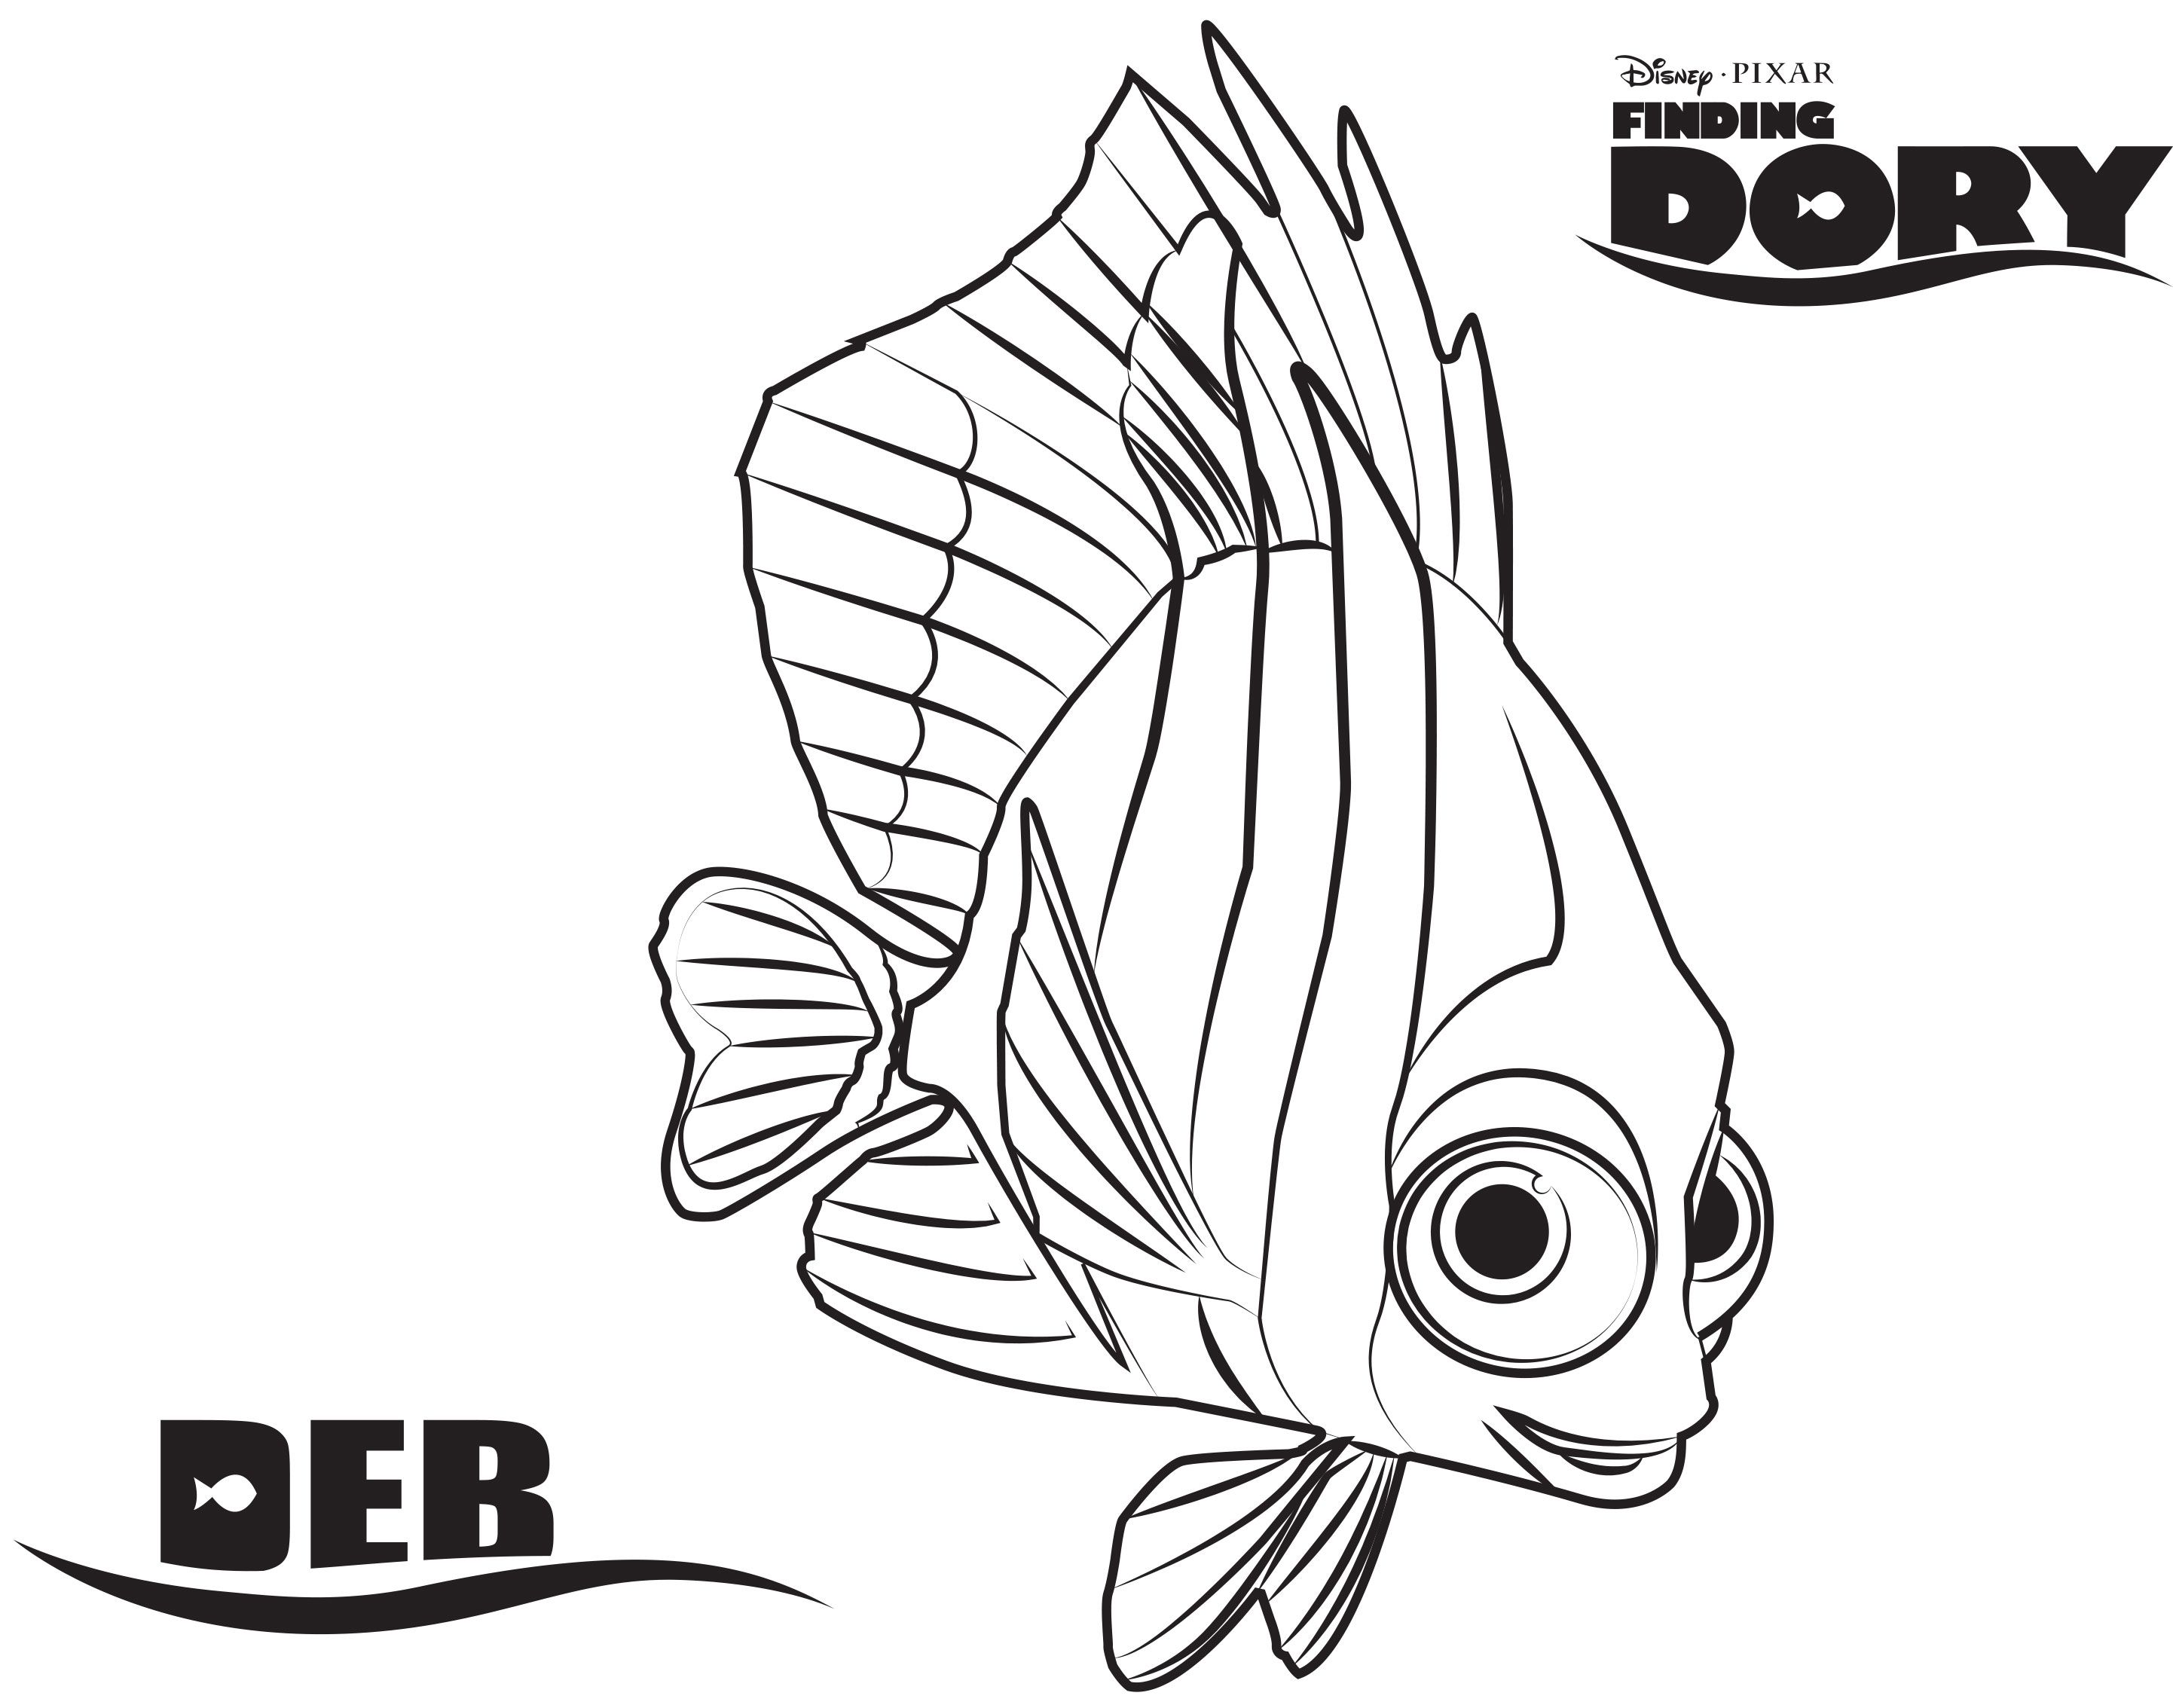 Disney S Finding Dory Coloring Pages Sheet Free Disney Printable